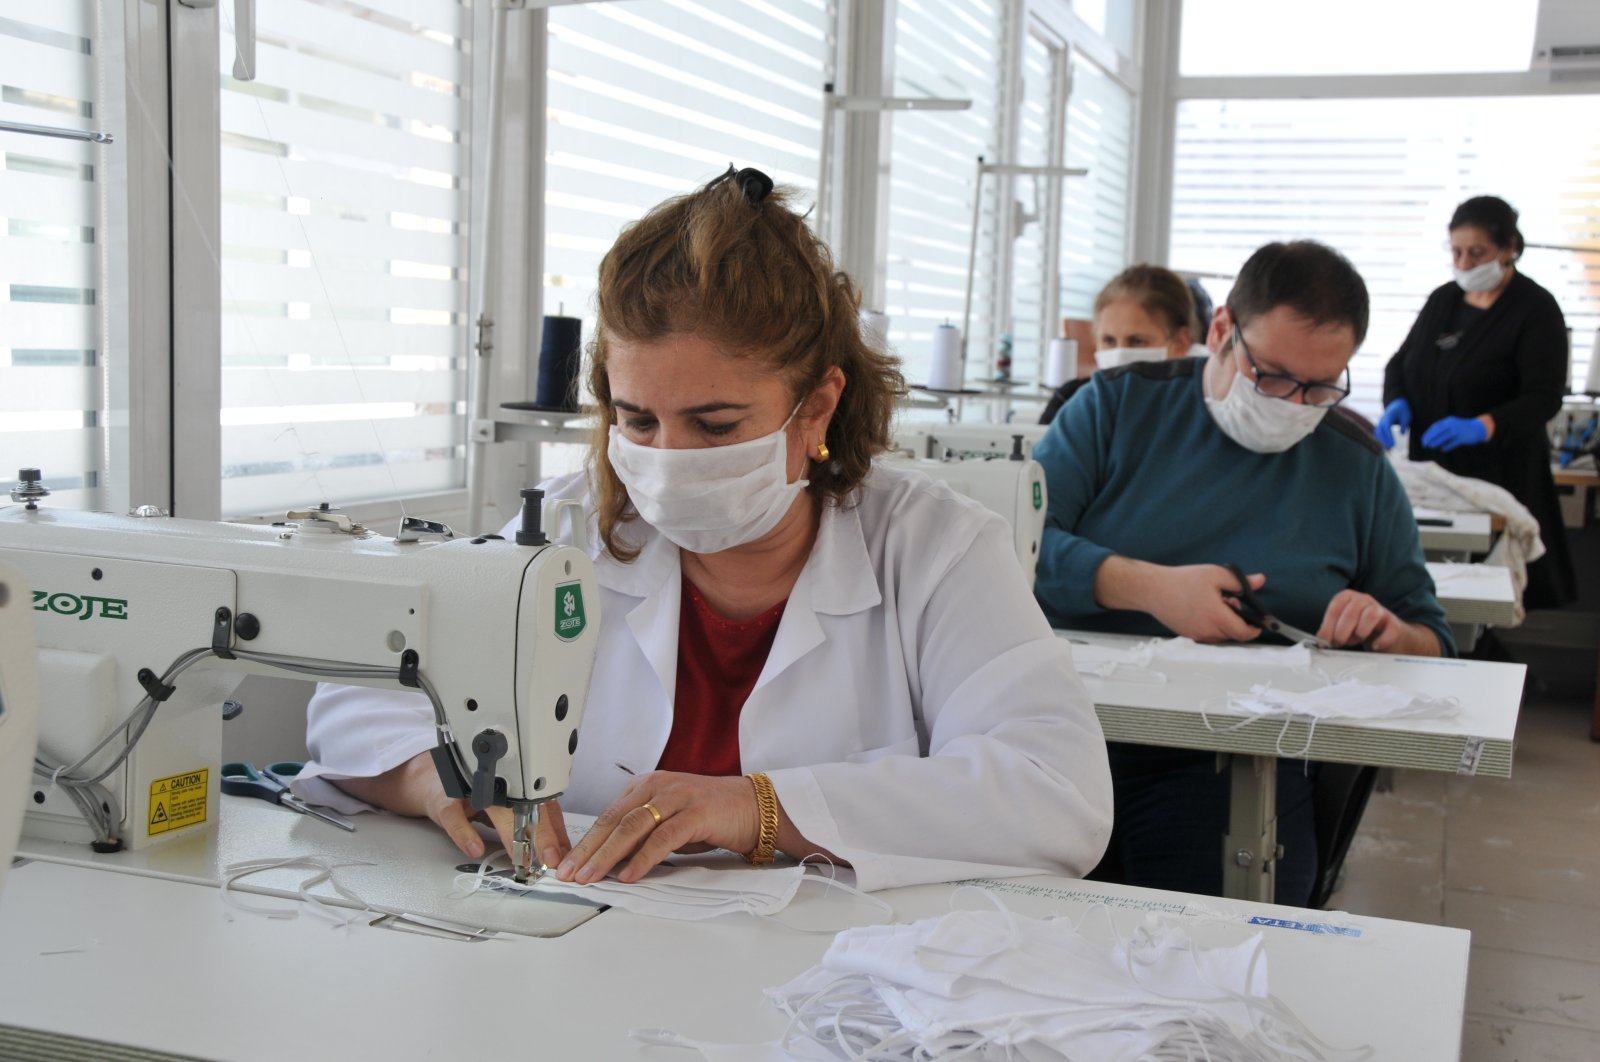 Volunteers at a workshop sew masks, Mardin, Tuesday, March 24, 2020. (DHA Photo)